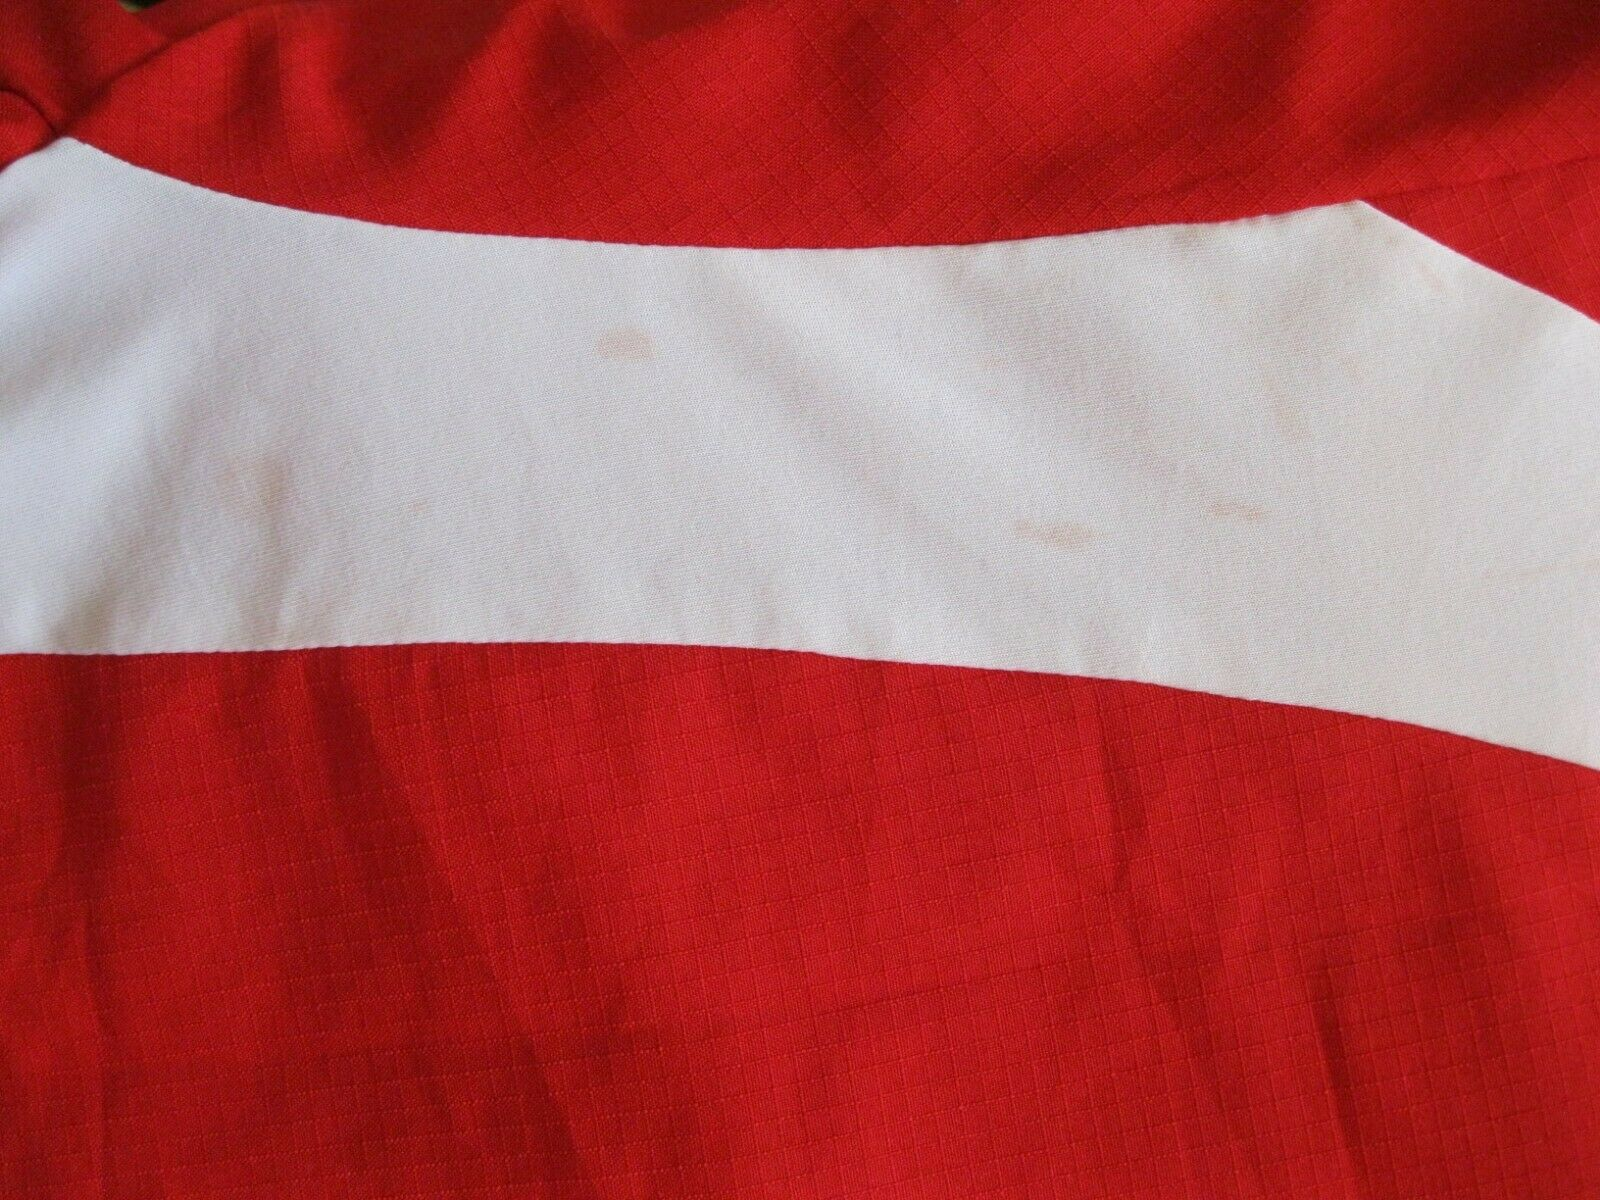 Switzerland team 2006/2008 Home Size L Puma jersey